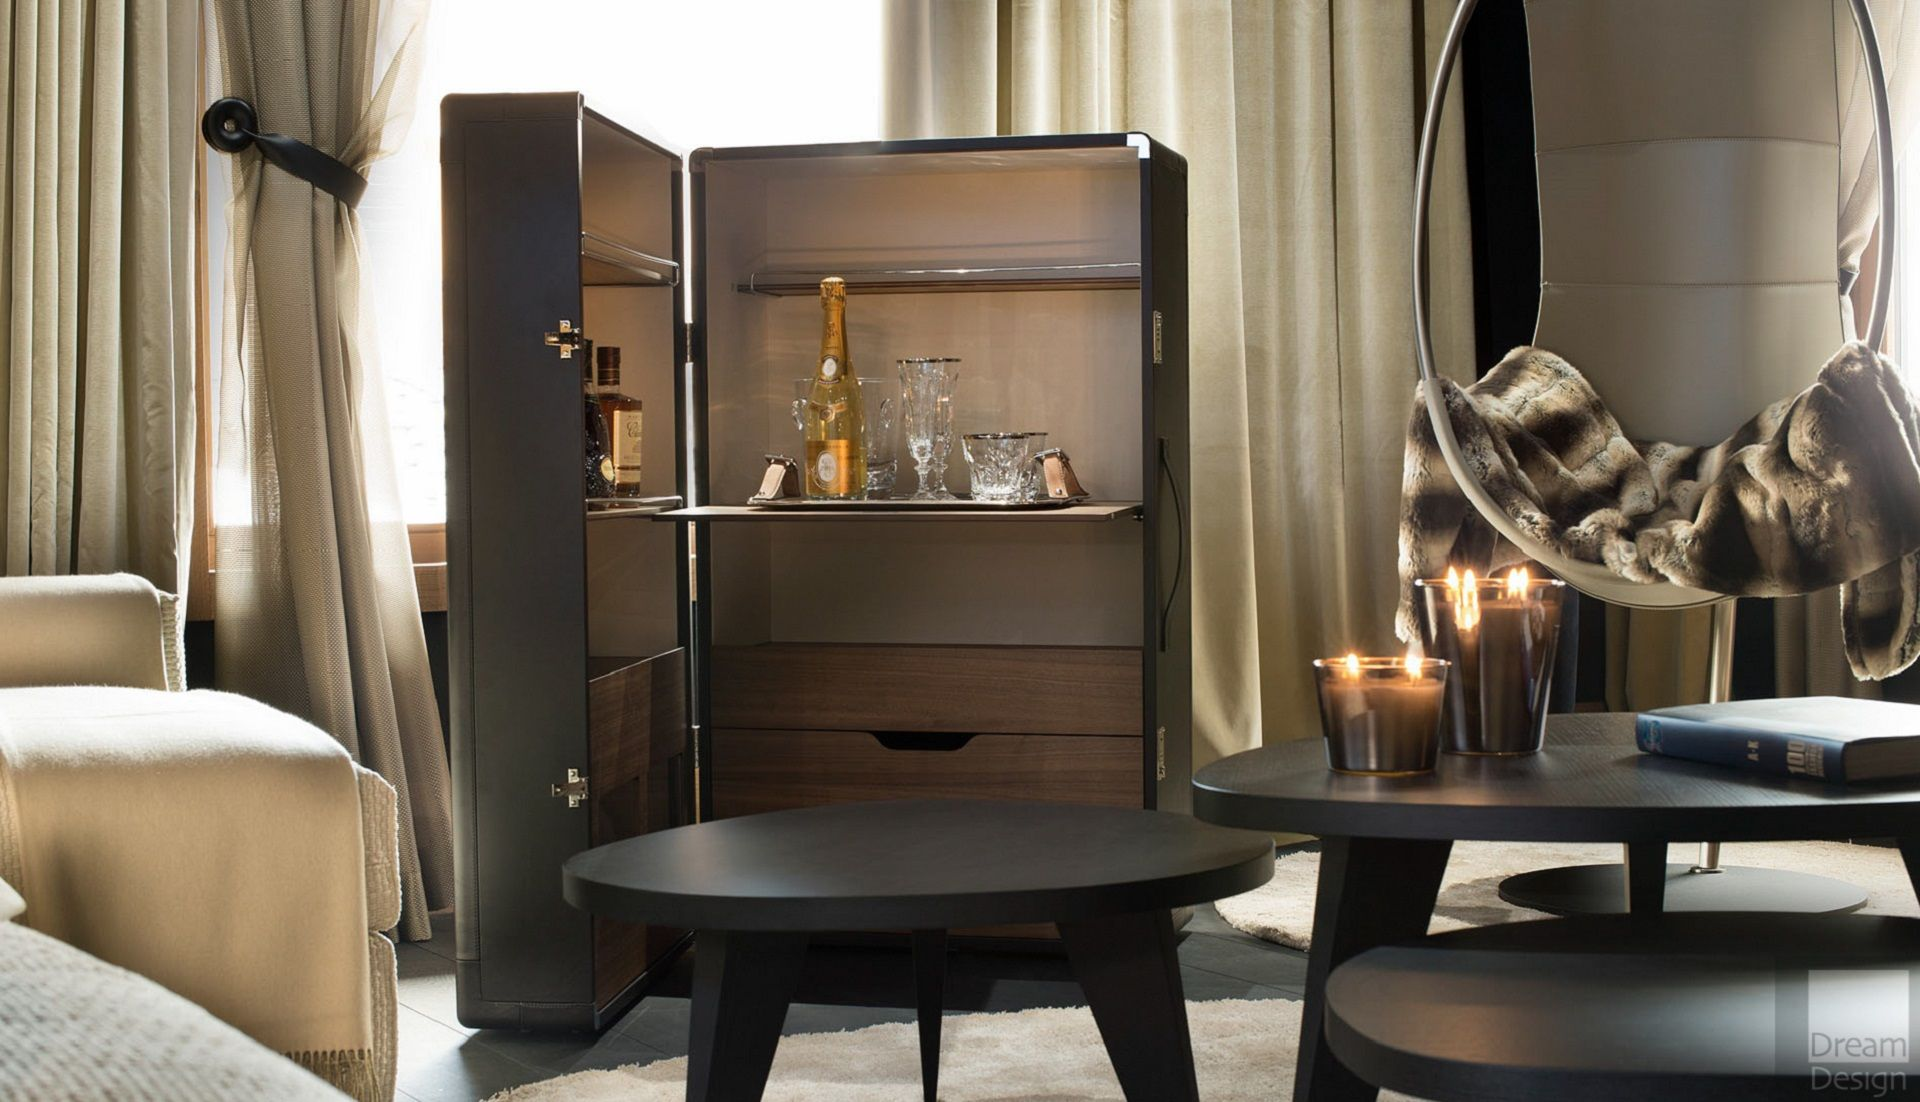 Poltrona Frau Isidoro Drinks Cabinet By Jean Marie Massaud